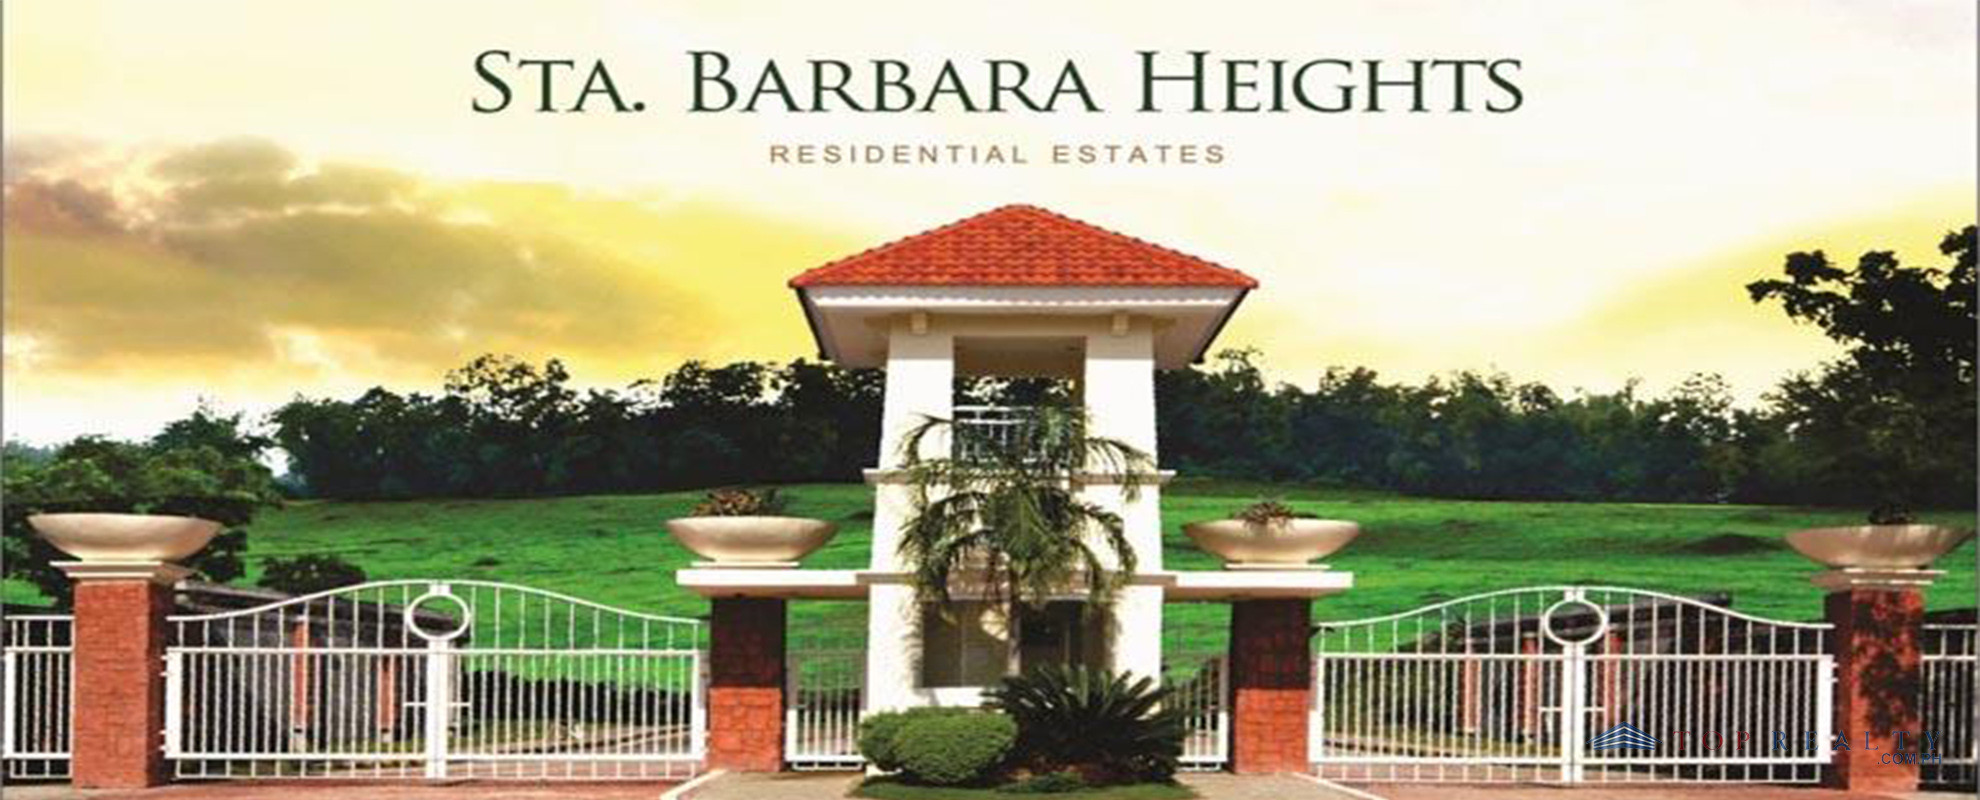 Top Realty Corporation Sta Barbara Heights